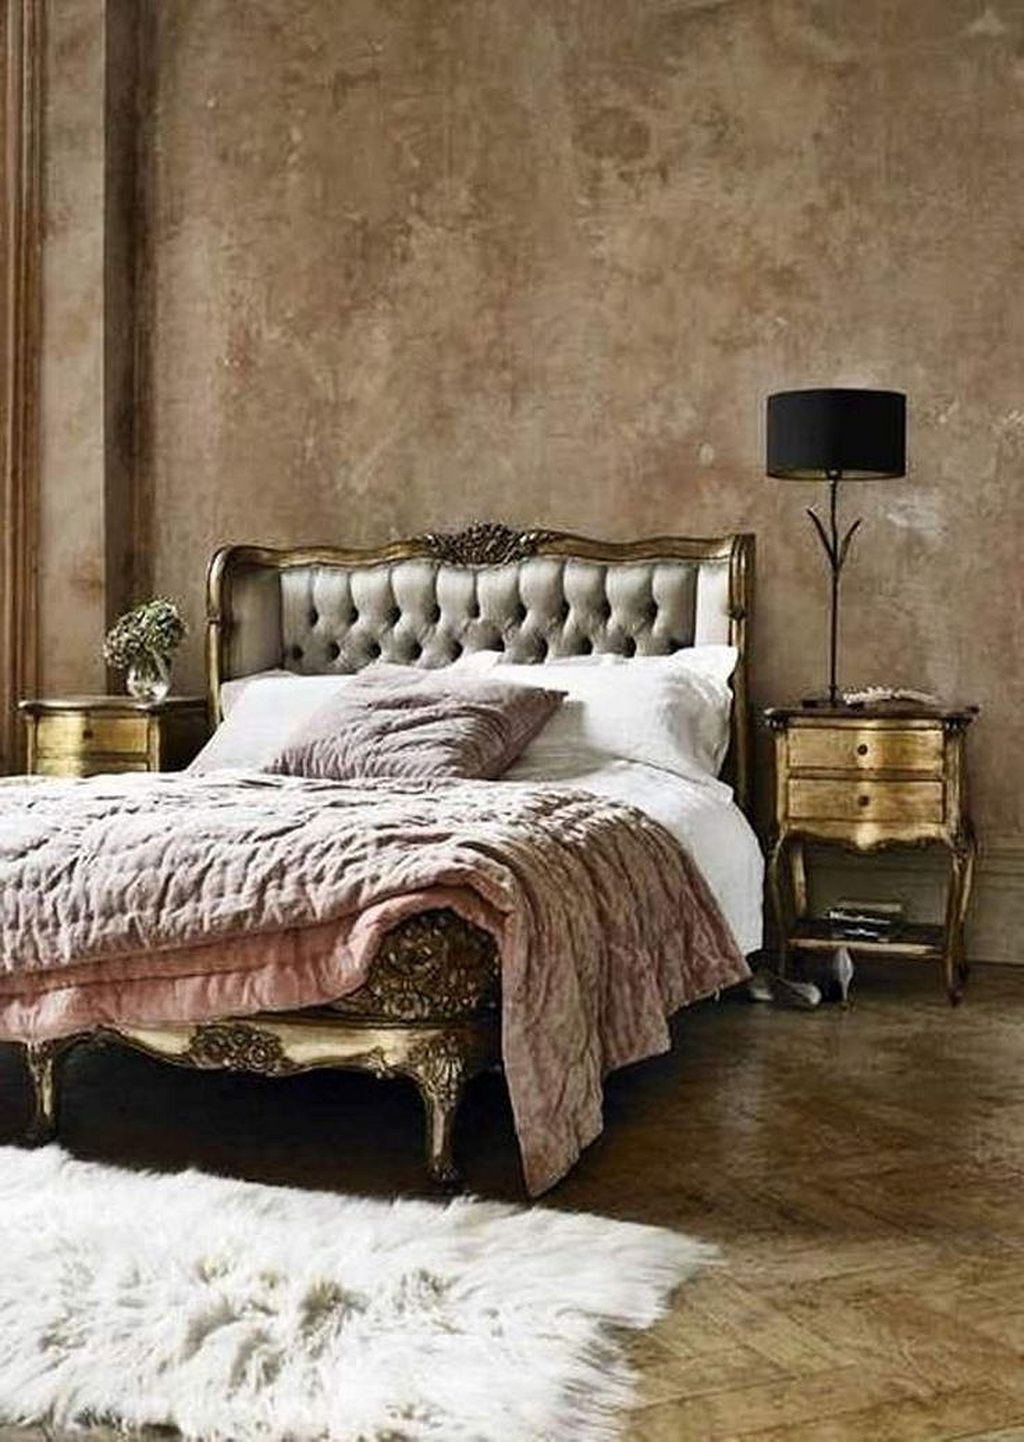 Elegant Romantic Bedrooms: 20+ Elegant Bedroom Decorating Ideas